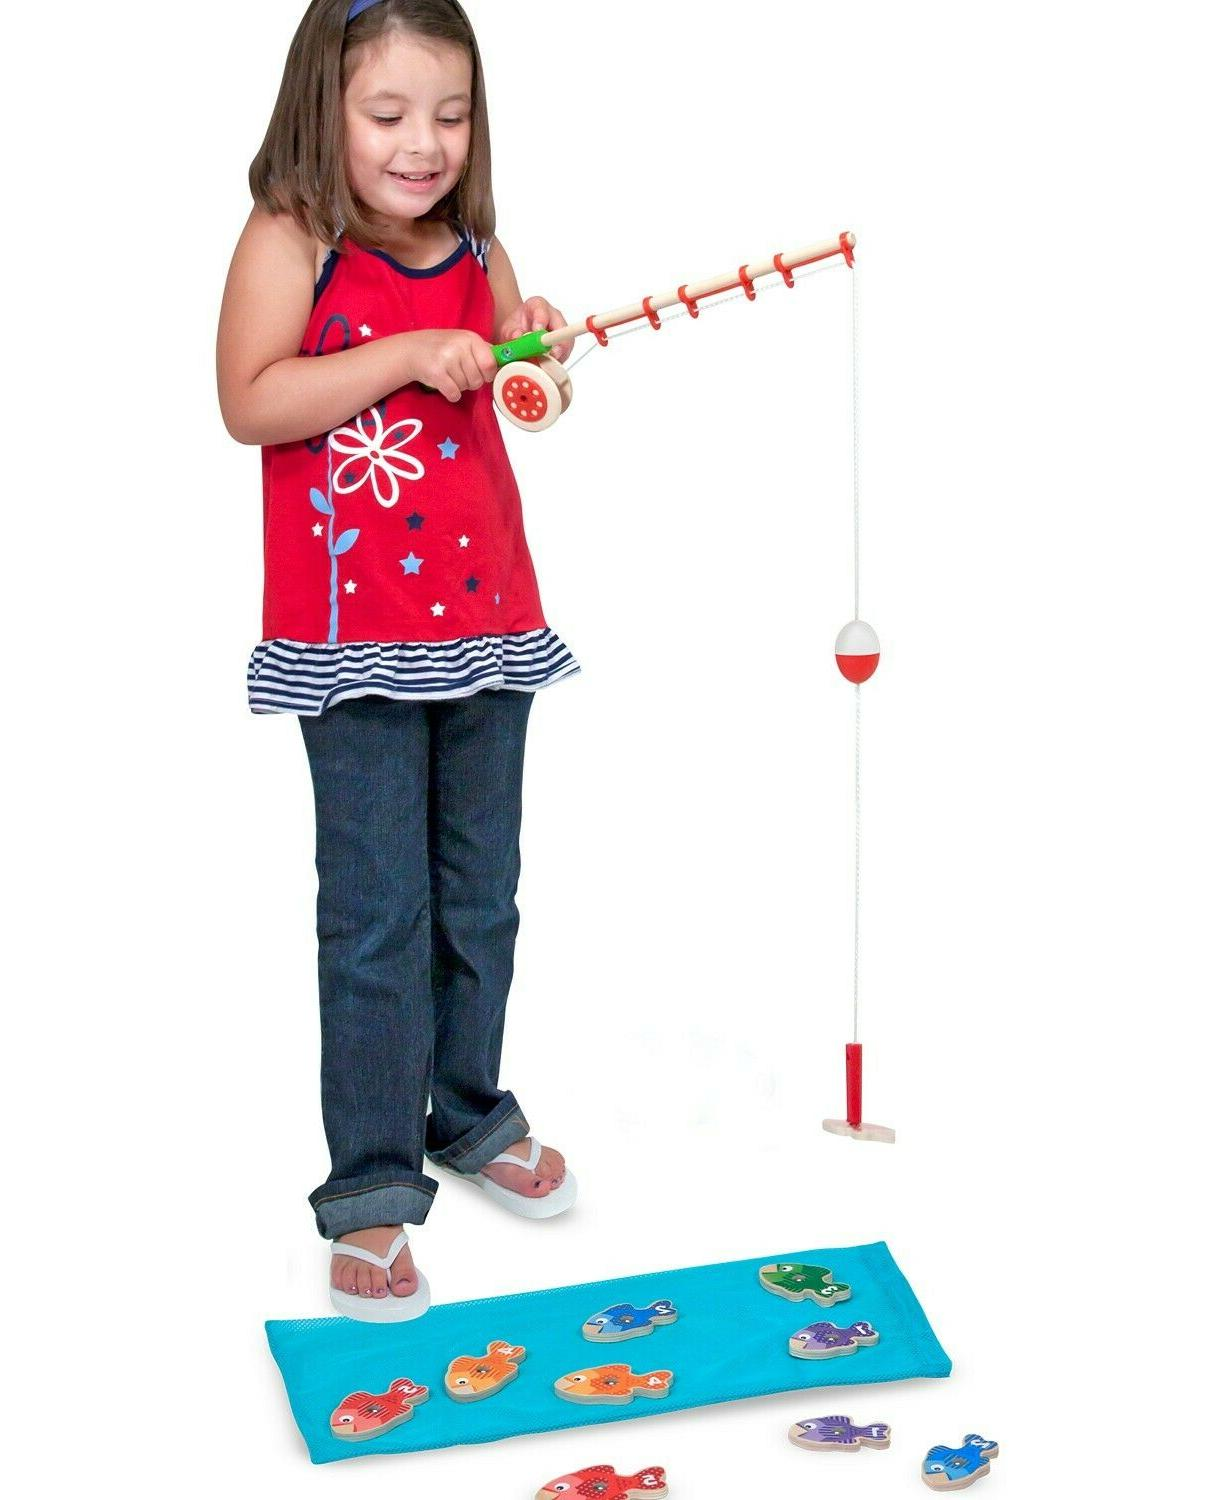 NEW Melissa Catch & Count Fishing Game, Fun Game Kids, FREE SHIPPING